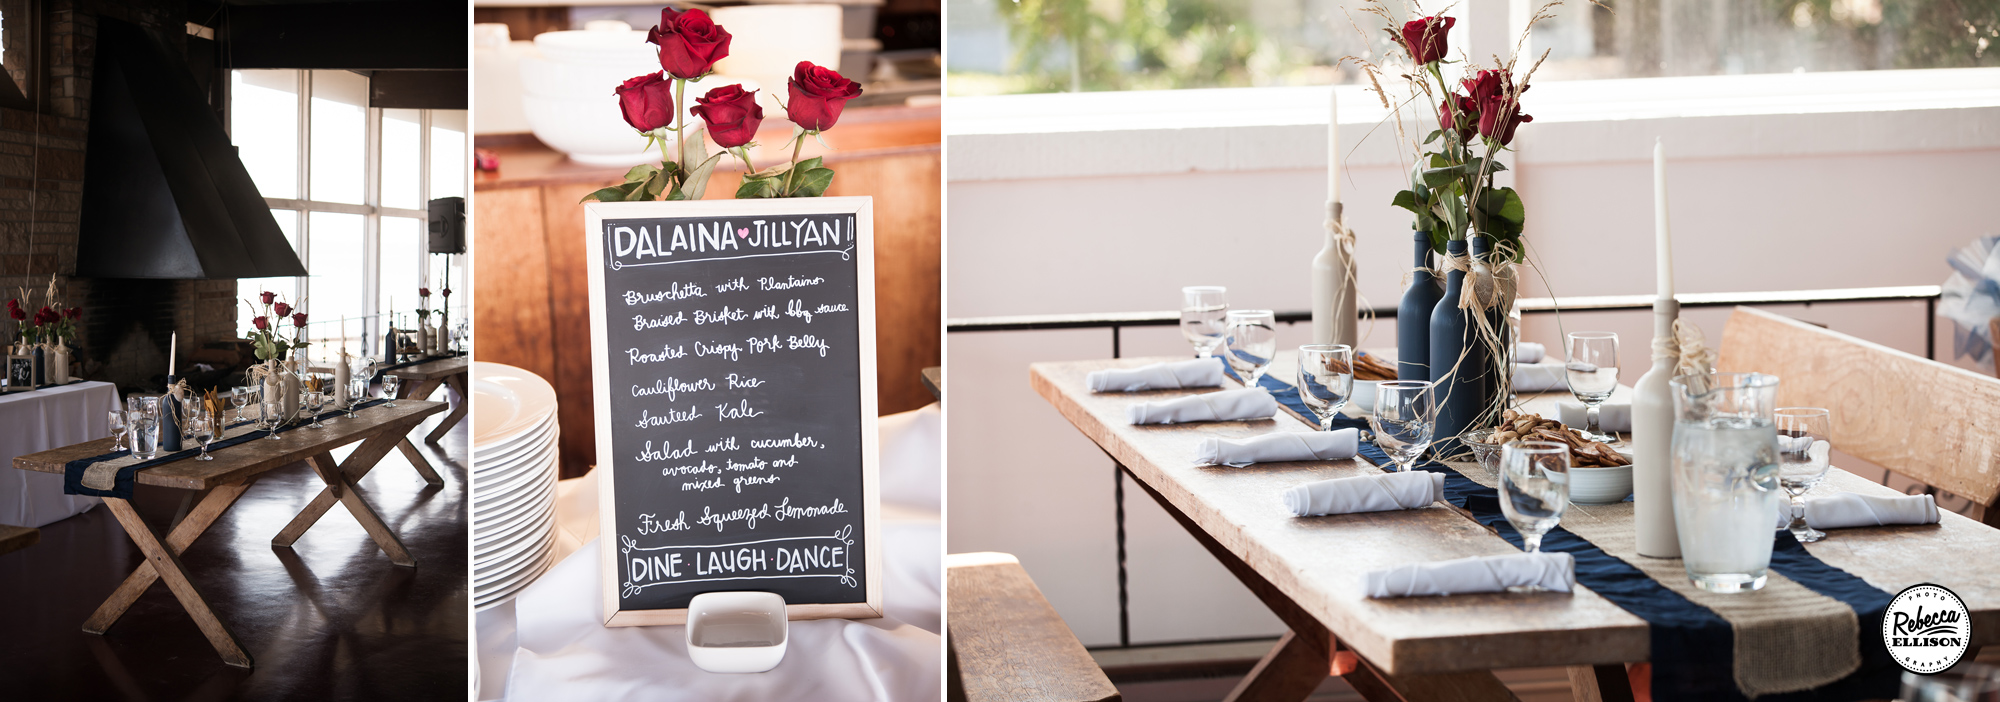 Chalkboards, red roses and painted wine bottles highlight an intimate beachfront wedding at the Hoodsport Beach Club photographed by Rebecca Ellison Photography